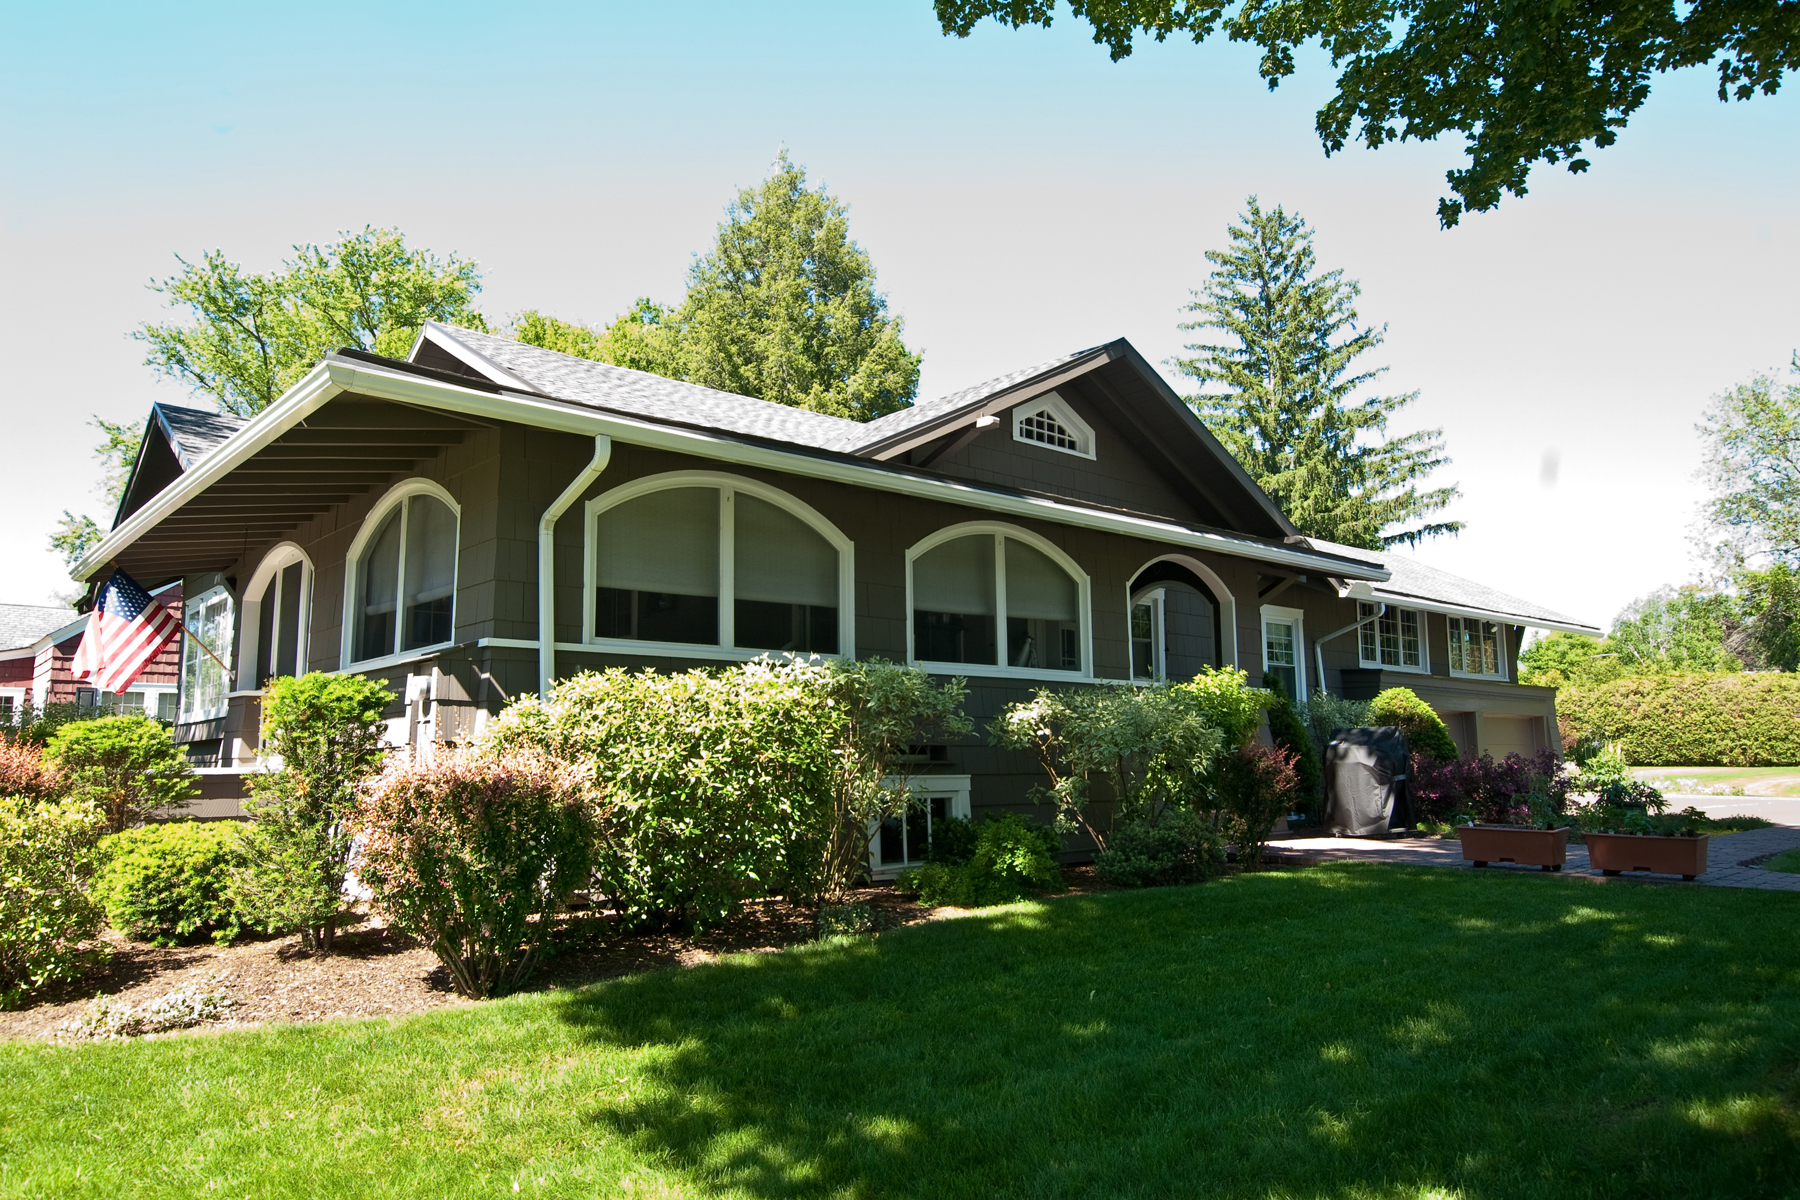 single family homes for Sale at Heated Garage and Screened Porch 122 Bellevue Ave Rutland, Vermont 05701 United States